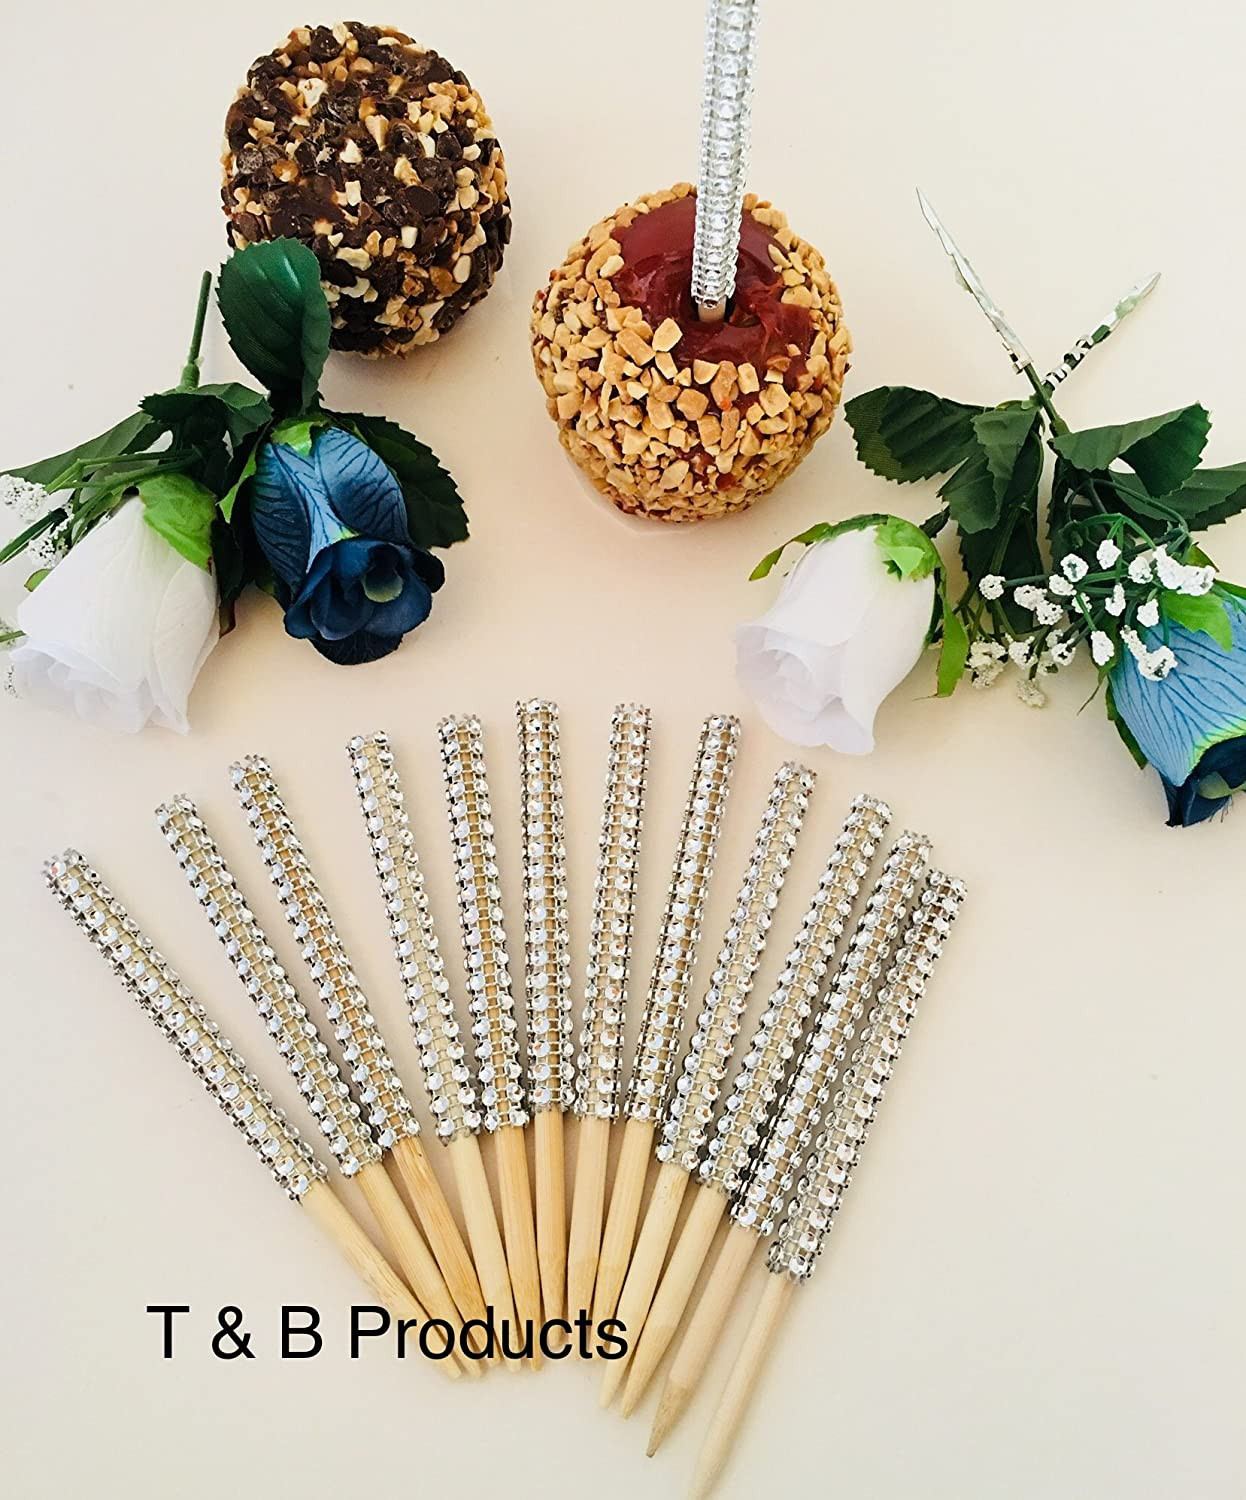 BLING GLAM 12 PC Bling Silver Candy Apple Sticks USPS First Class shipping